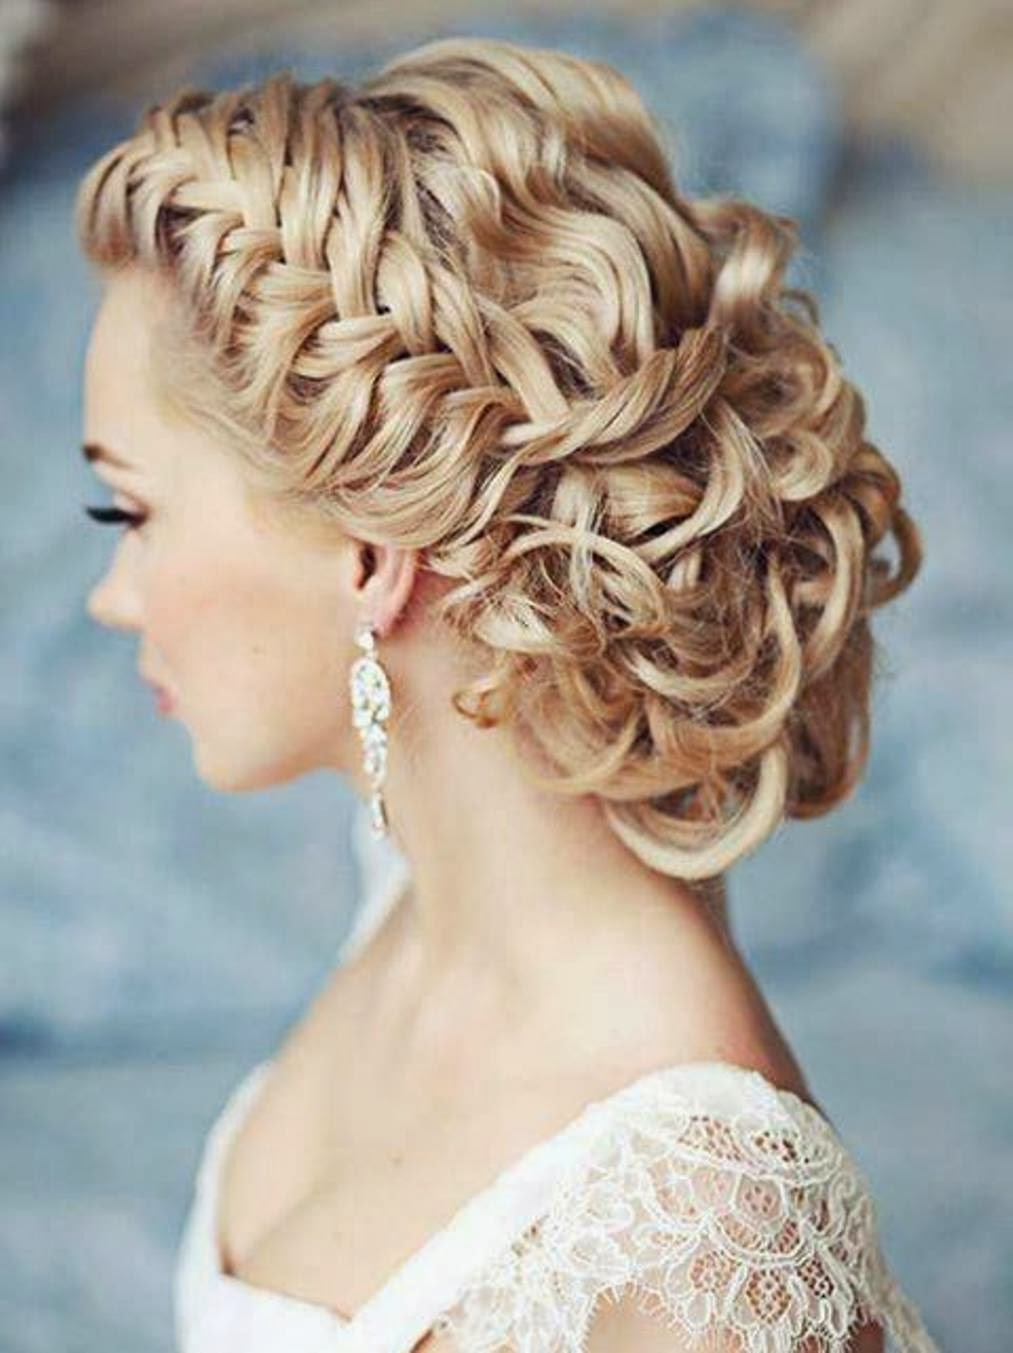 Memorable Wedding Bridal Hair Trend Braids